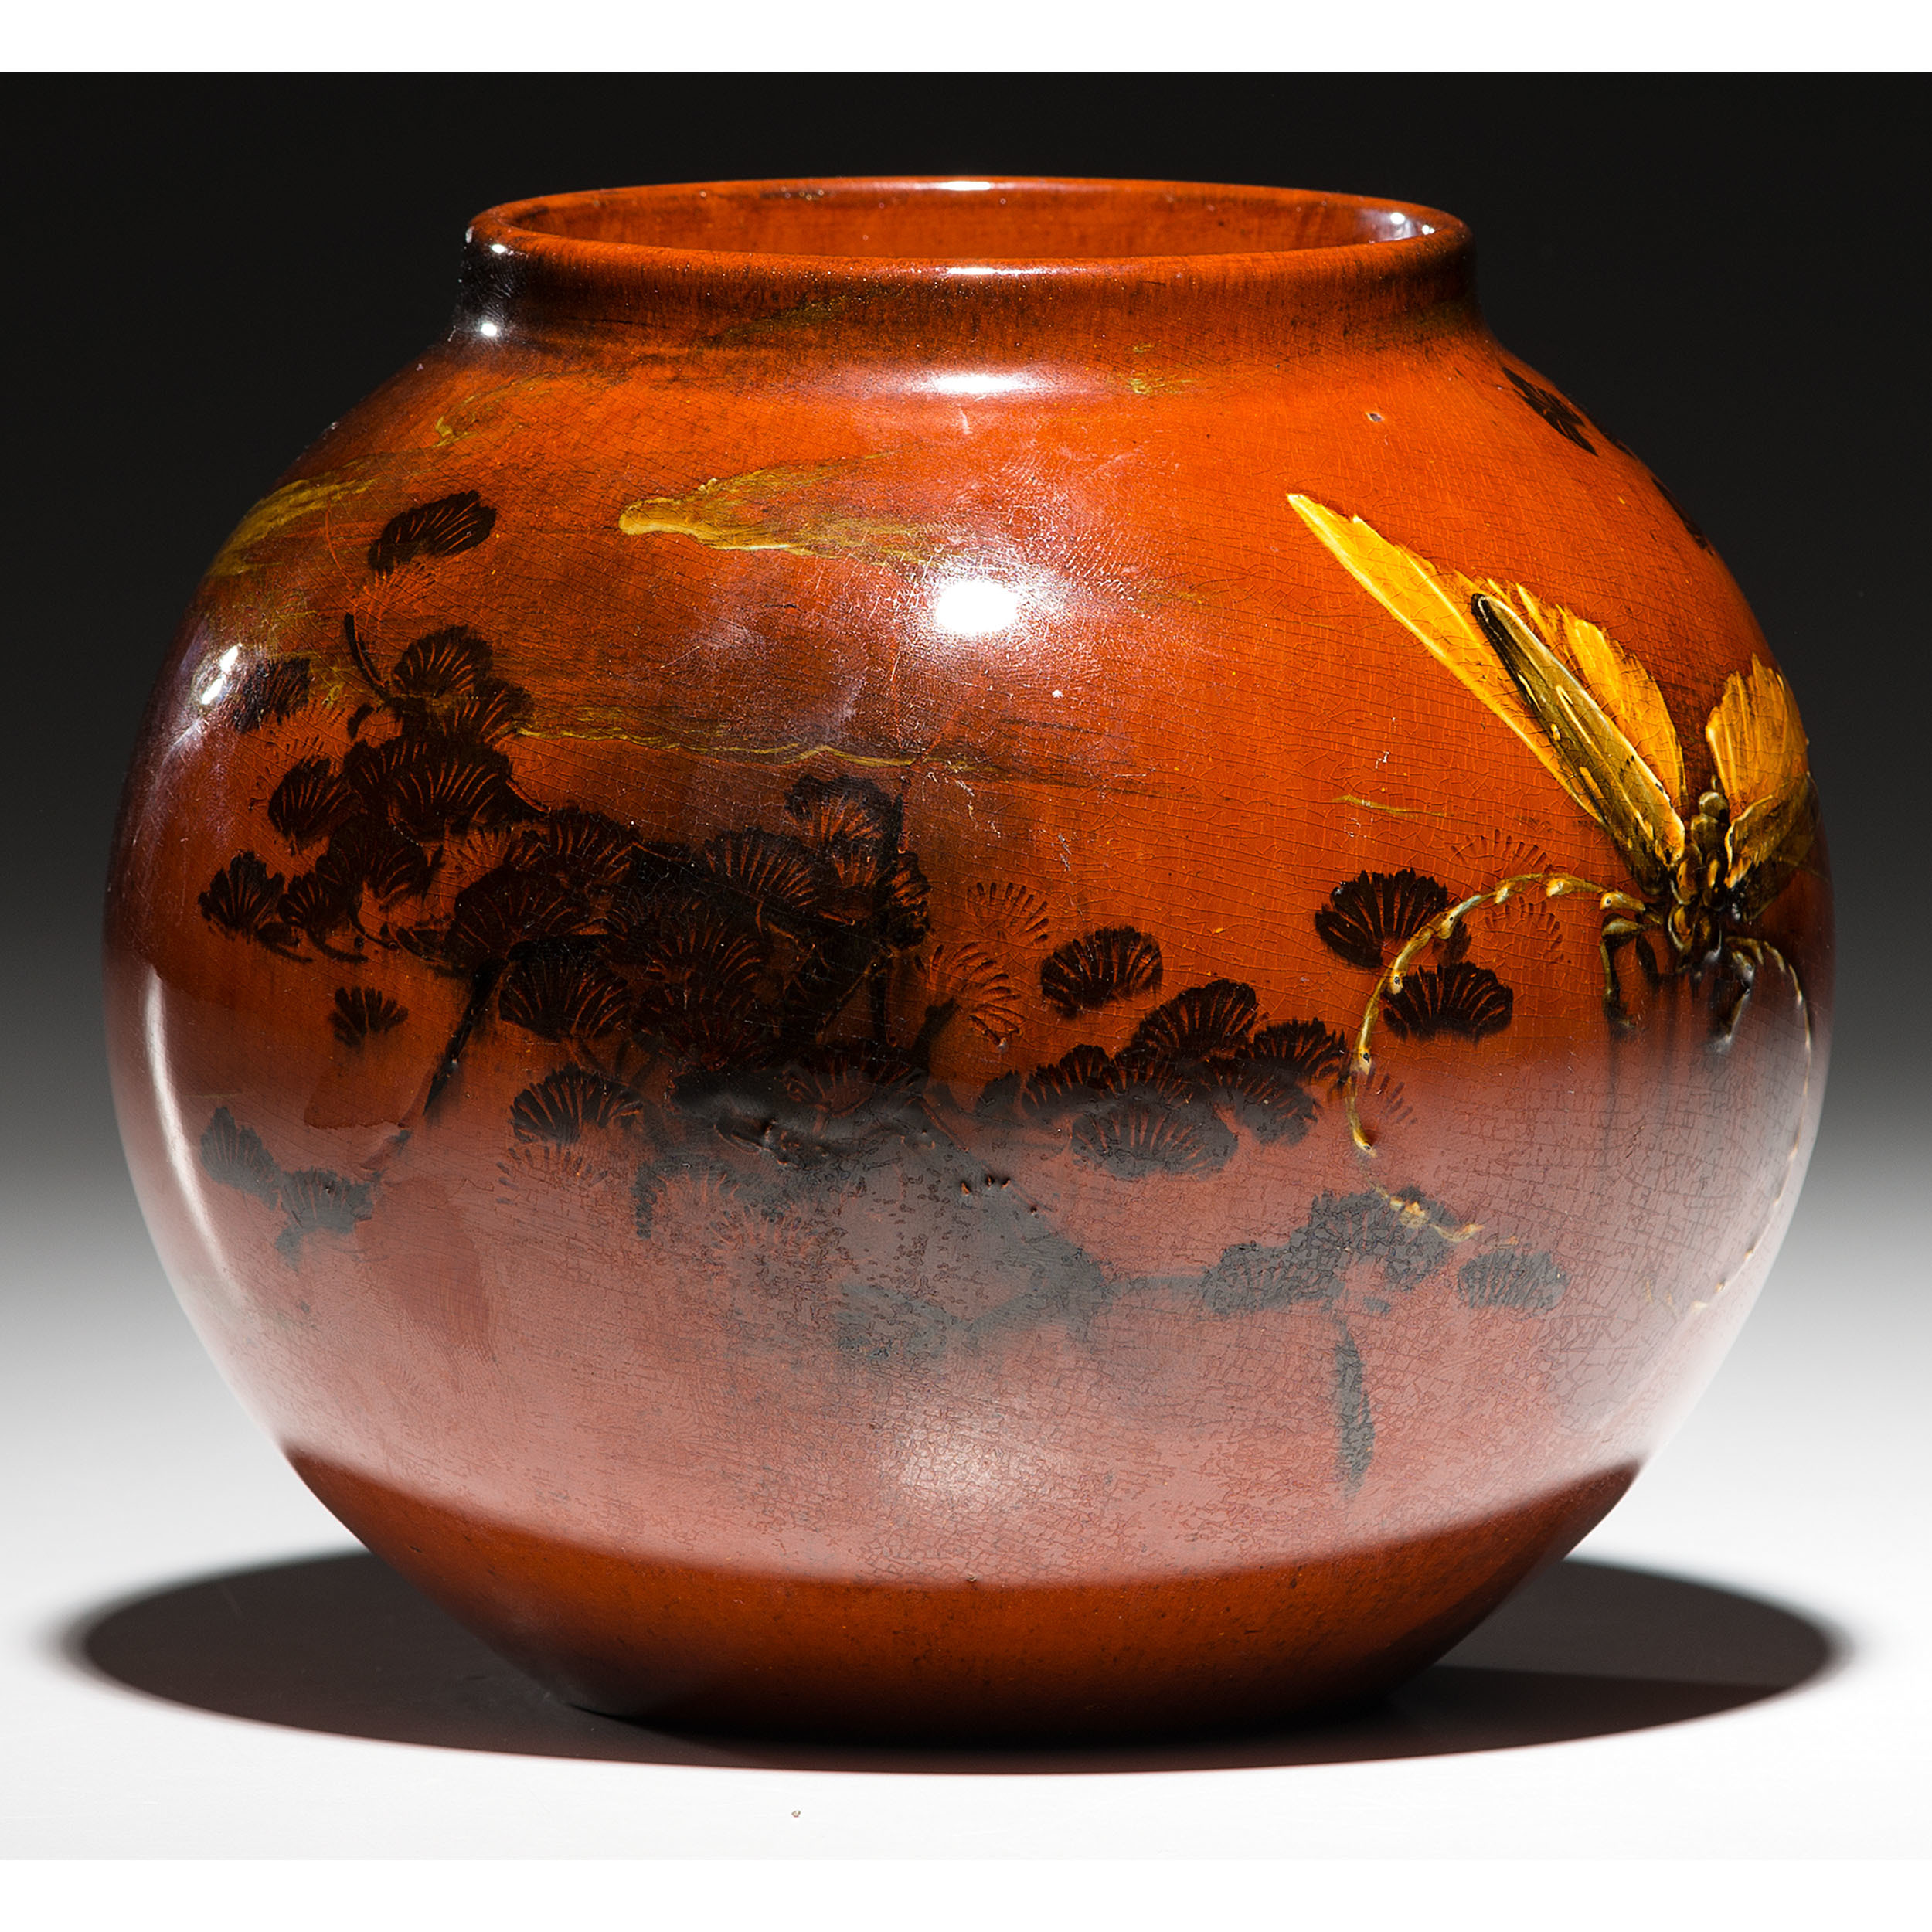 Rookwood Pottery Red Clay Vase, Matthew Daly | Cowans